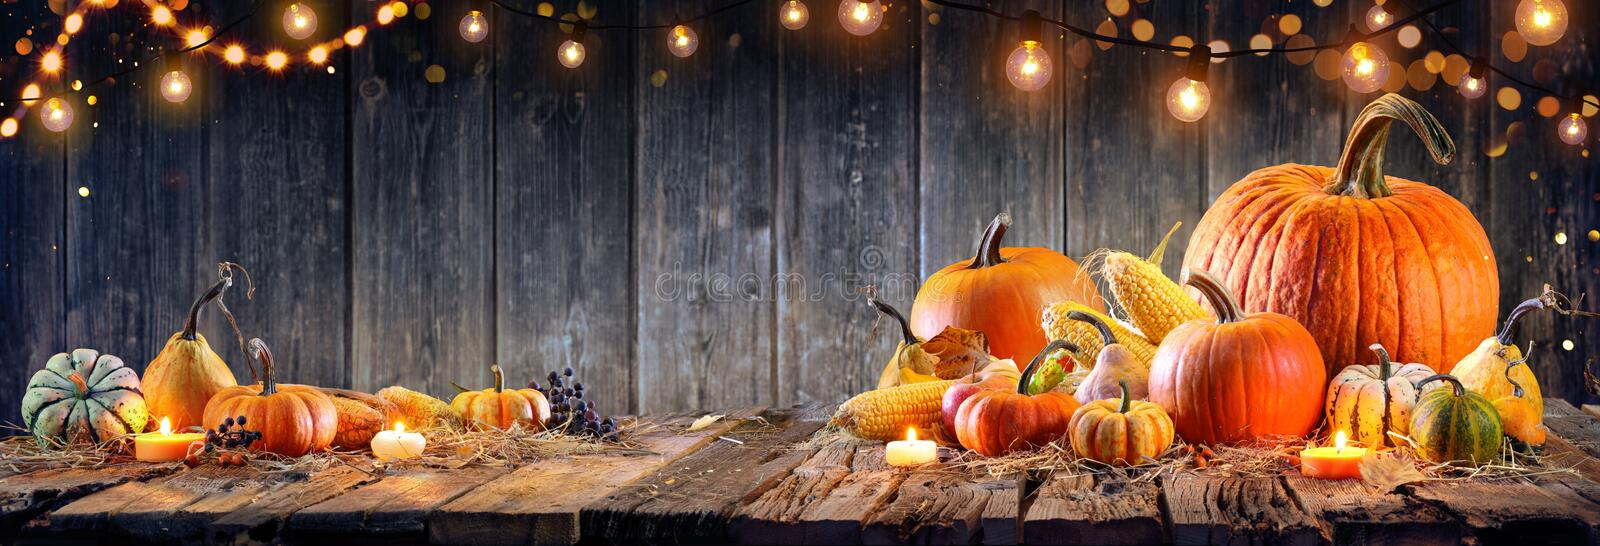 Thanksgiving - Pumpkins And Corncobs royalty free stock photos